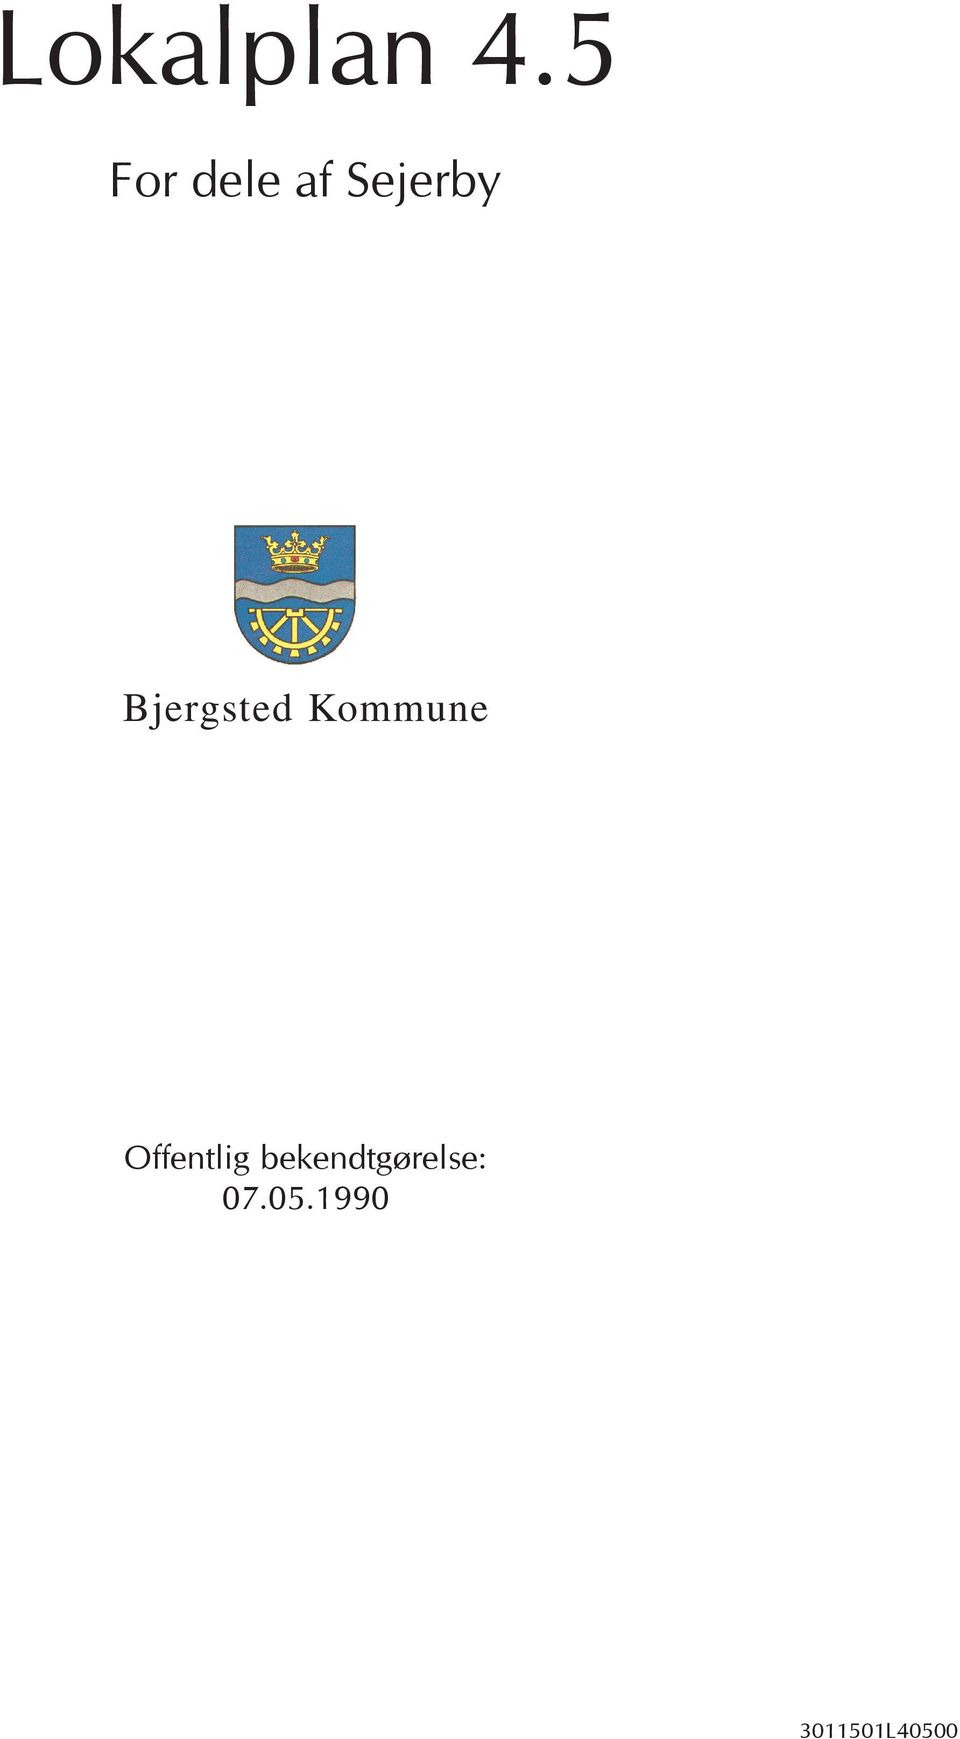 Bjergsted Kommune